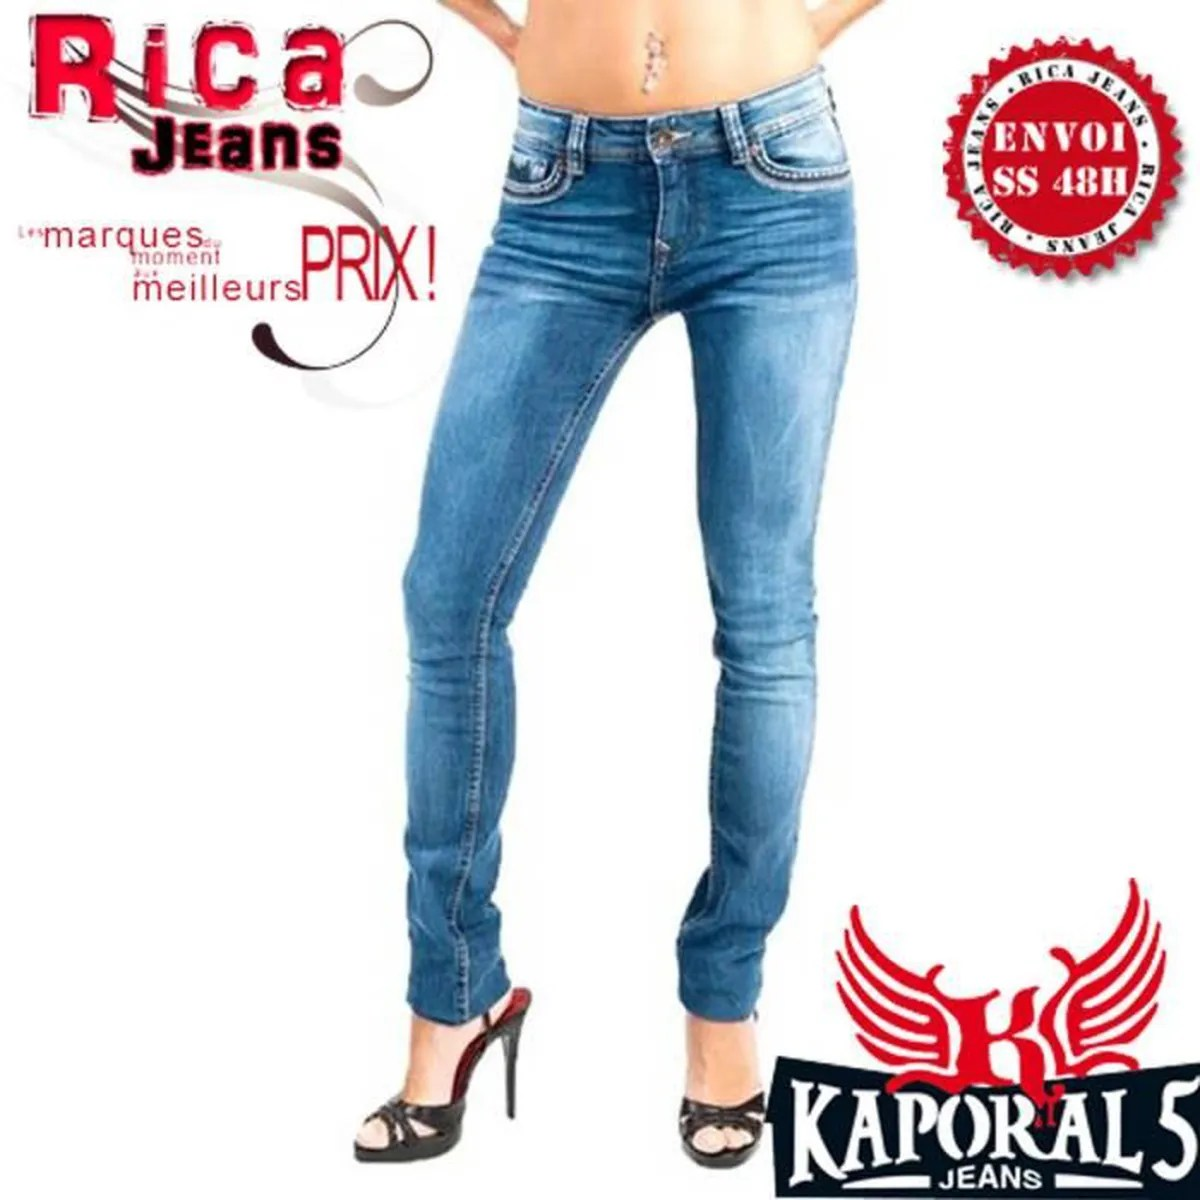 Levis 501 Femme Coupe Droite Jeans Kaporal5 Femme Neuf Taille 26us Coupe Slim Modele Merille